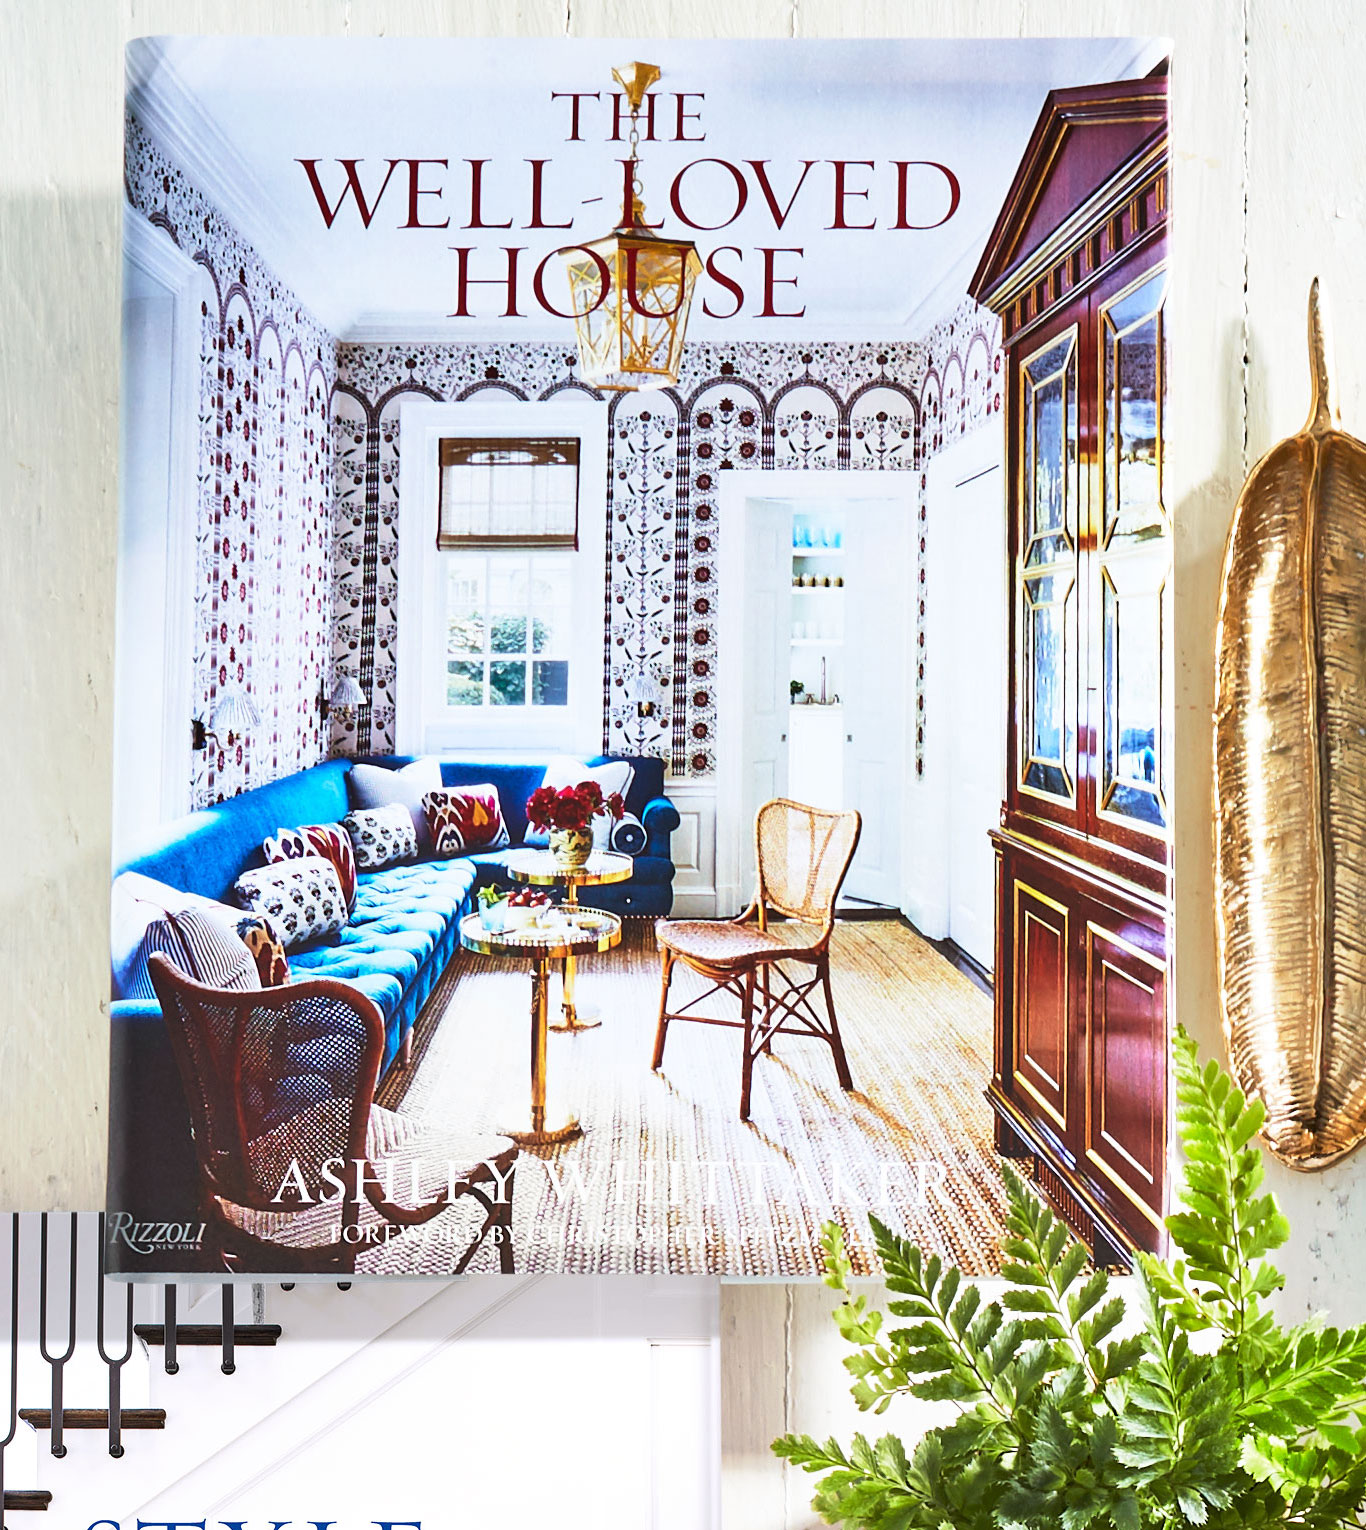 The Well-Loved House: Creating Homes with Color, Comfort, and Drama